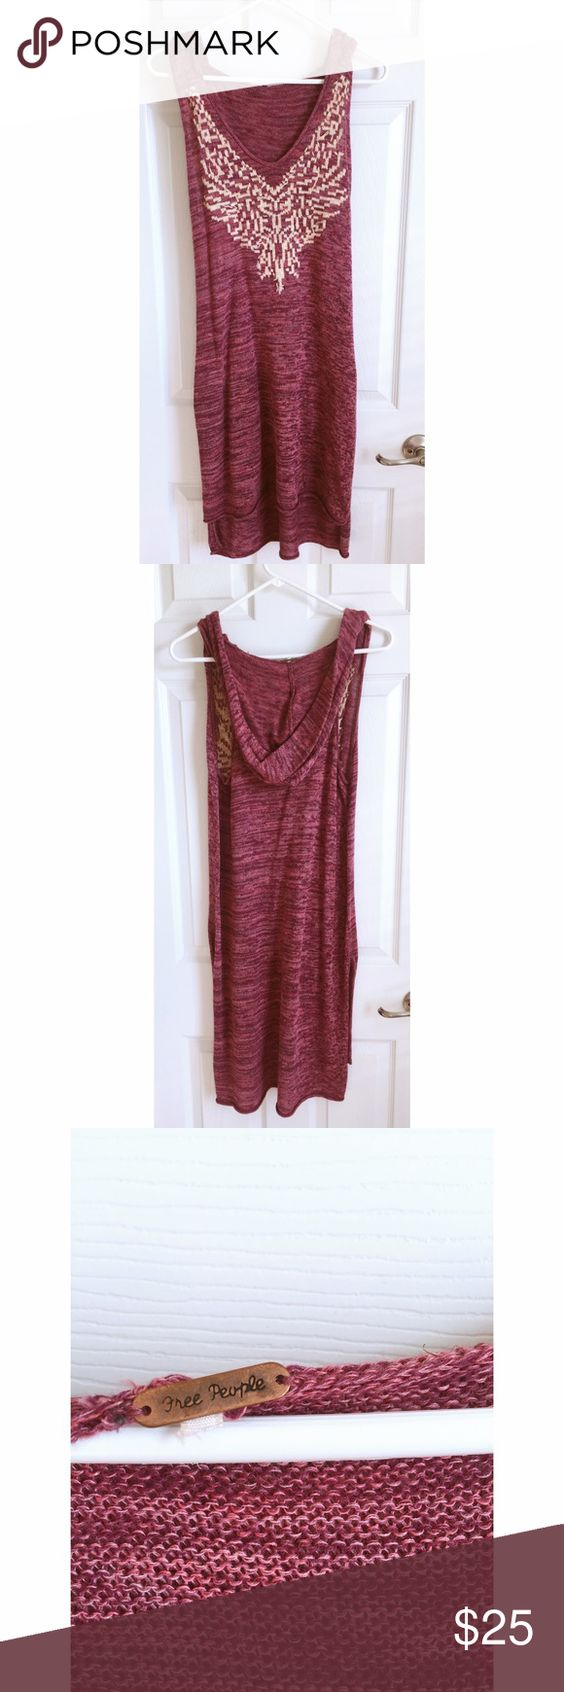 Free People Sleeveless-Hooded Tunic Free People Sleeveless-Hooded Tunic. Size small. Worn once. Has slits on bottom of each side & is meant to be worn over something and not as a dress. Free People Tops Tunics